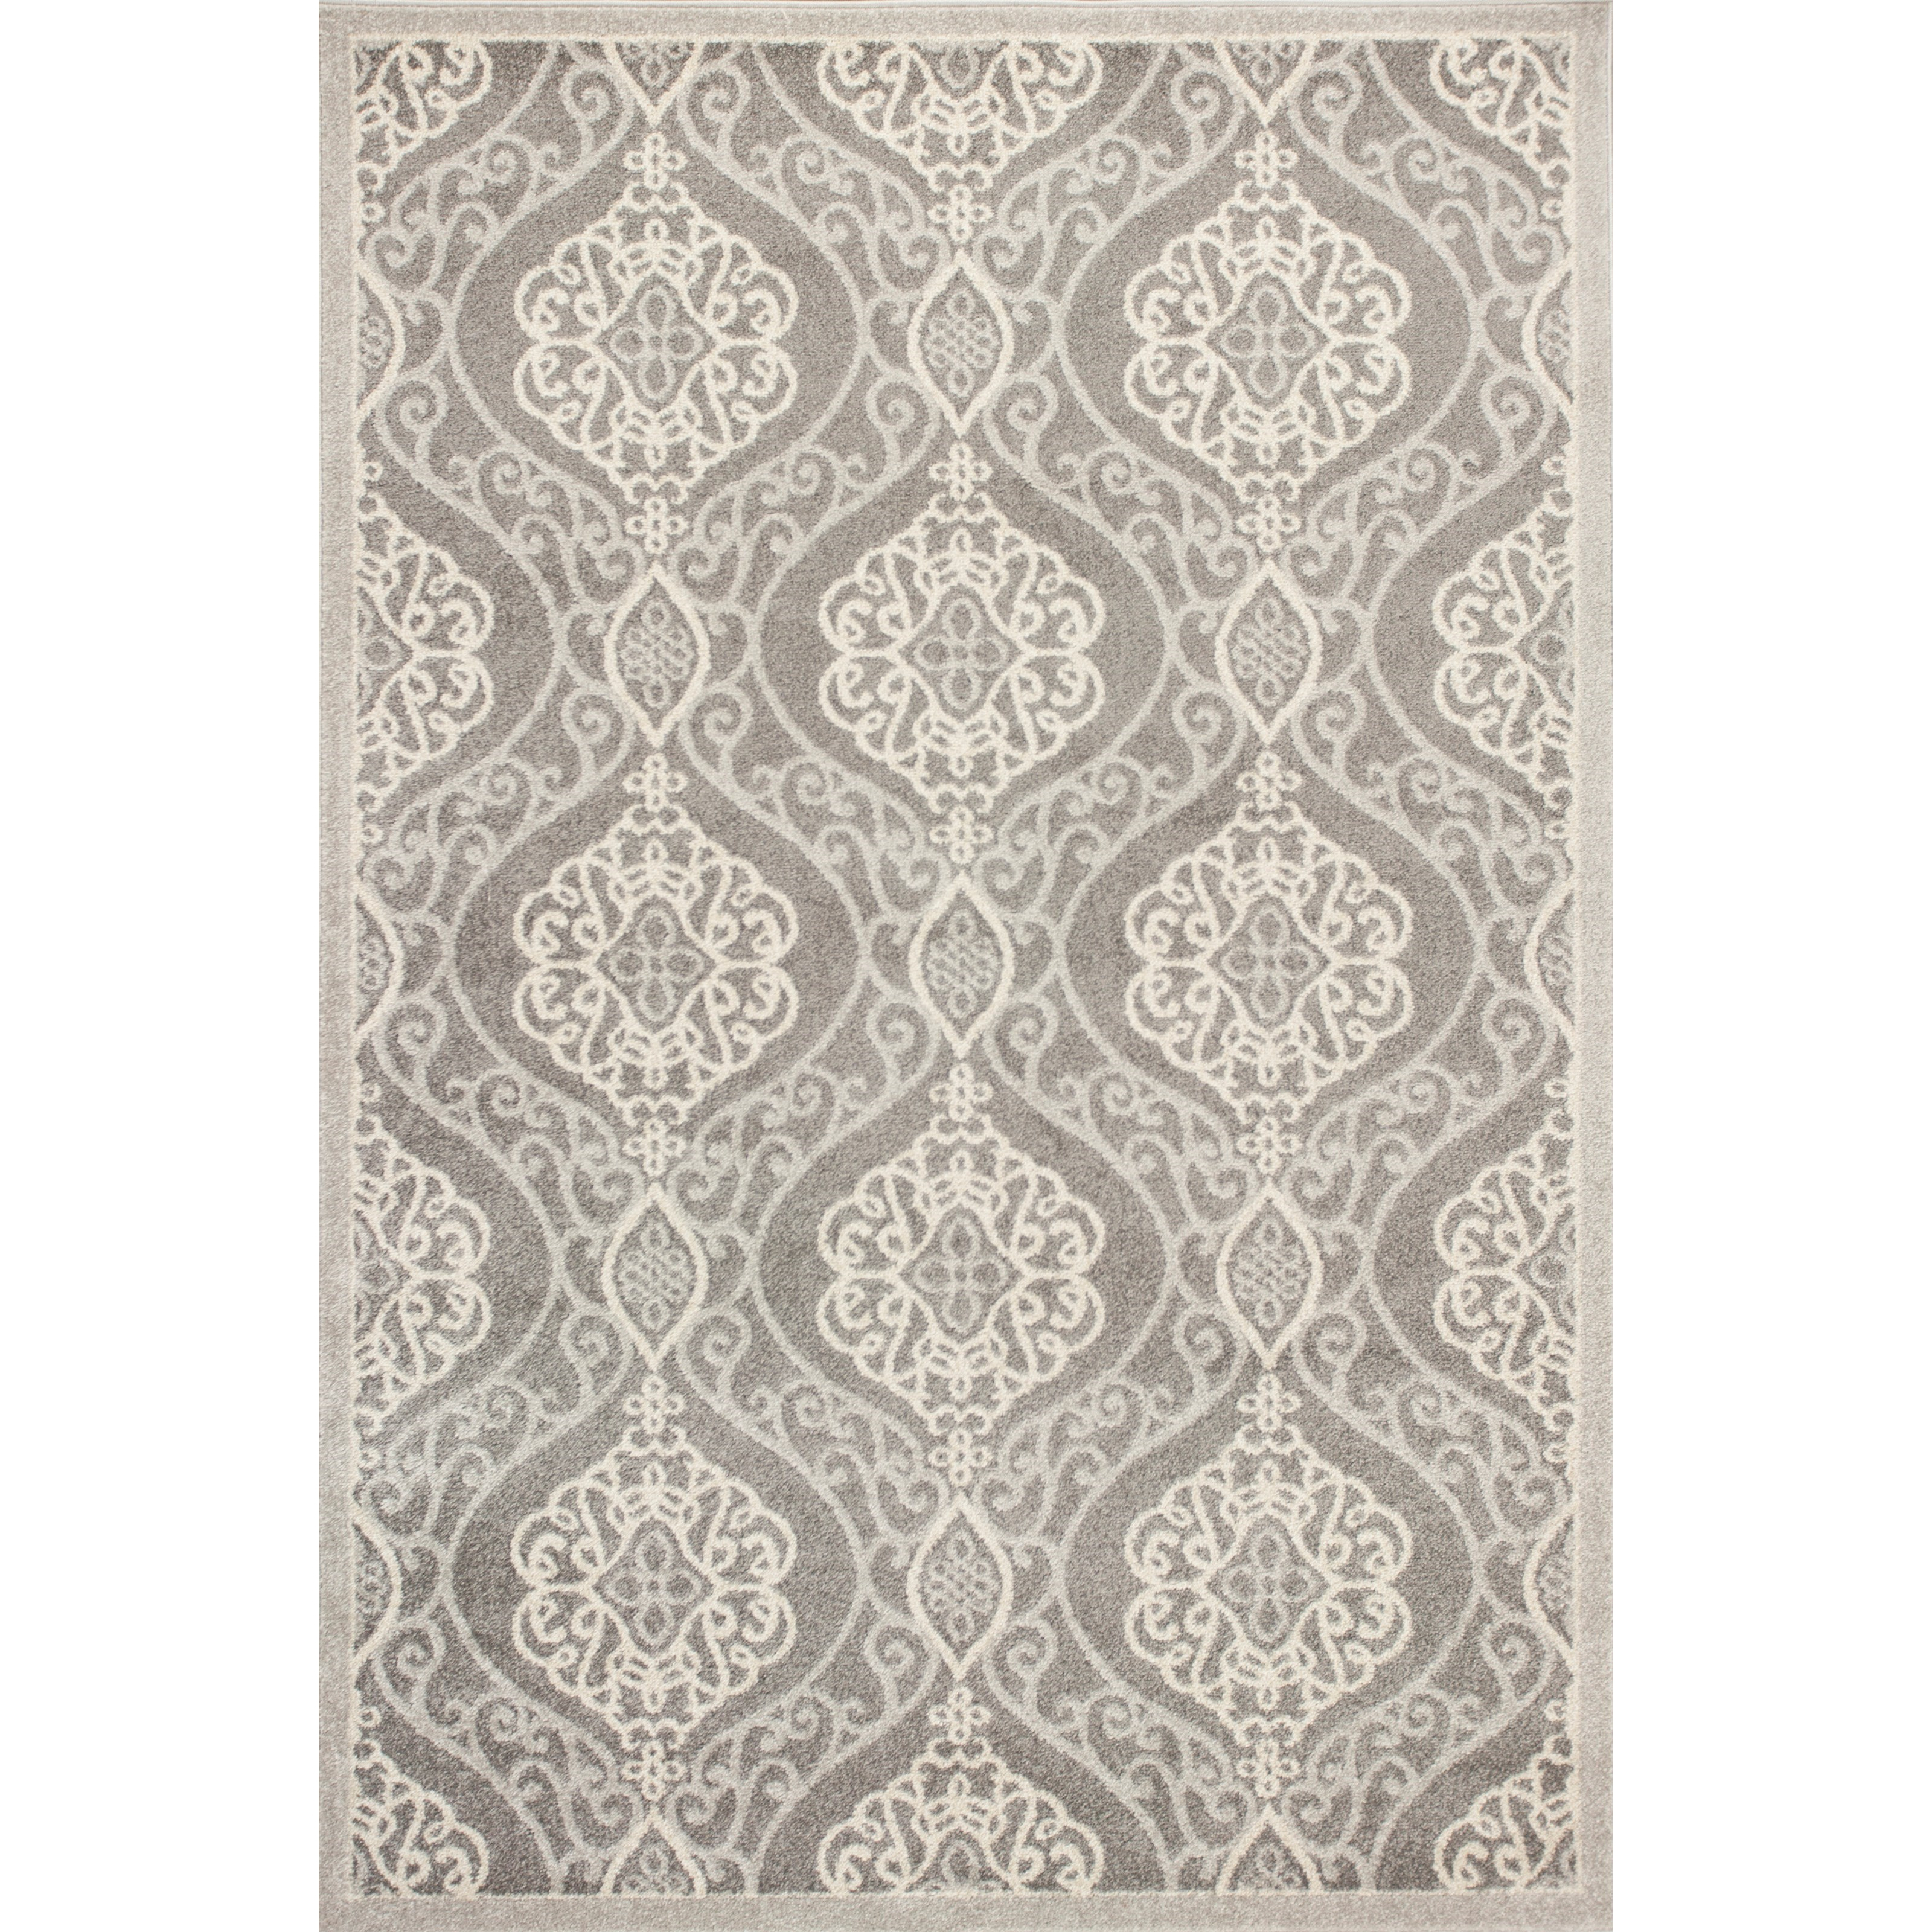 "Lucia 5'3"" X 7'7"" Silver Mosaic Area Rug by Kas at Zak's Home"